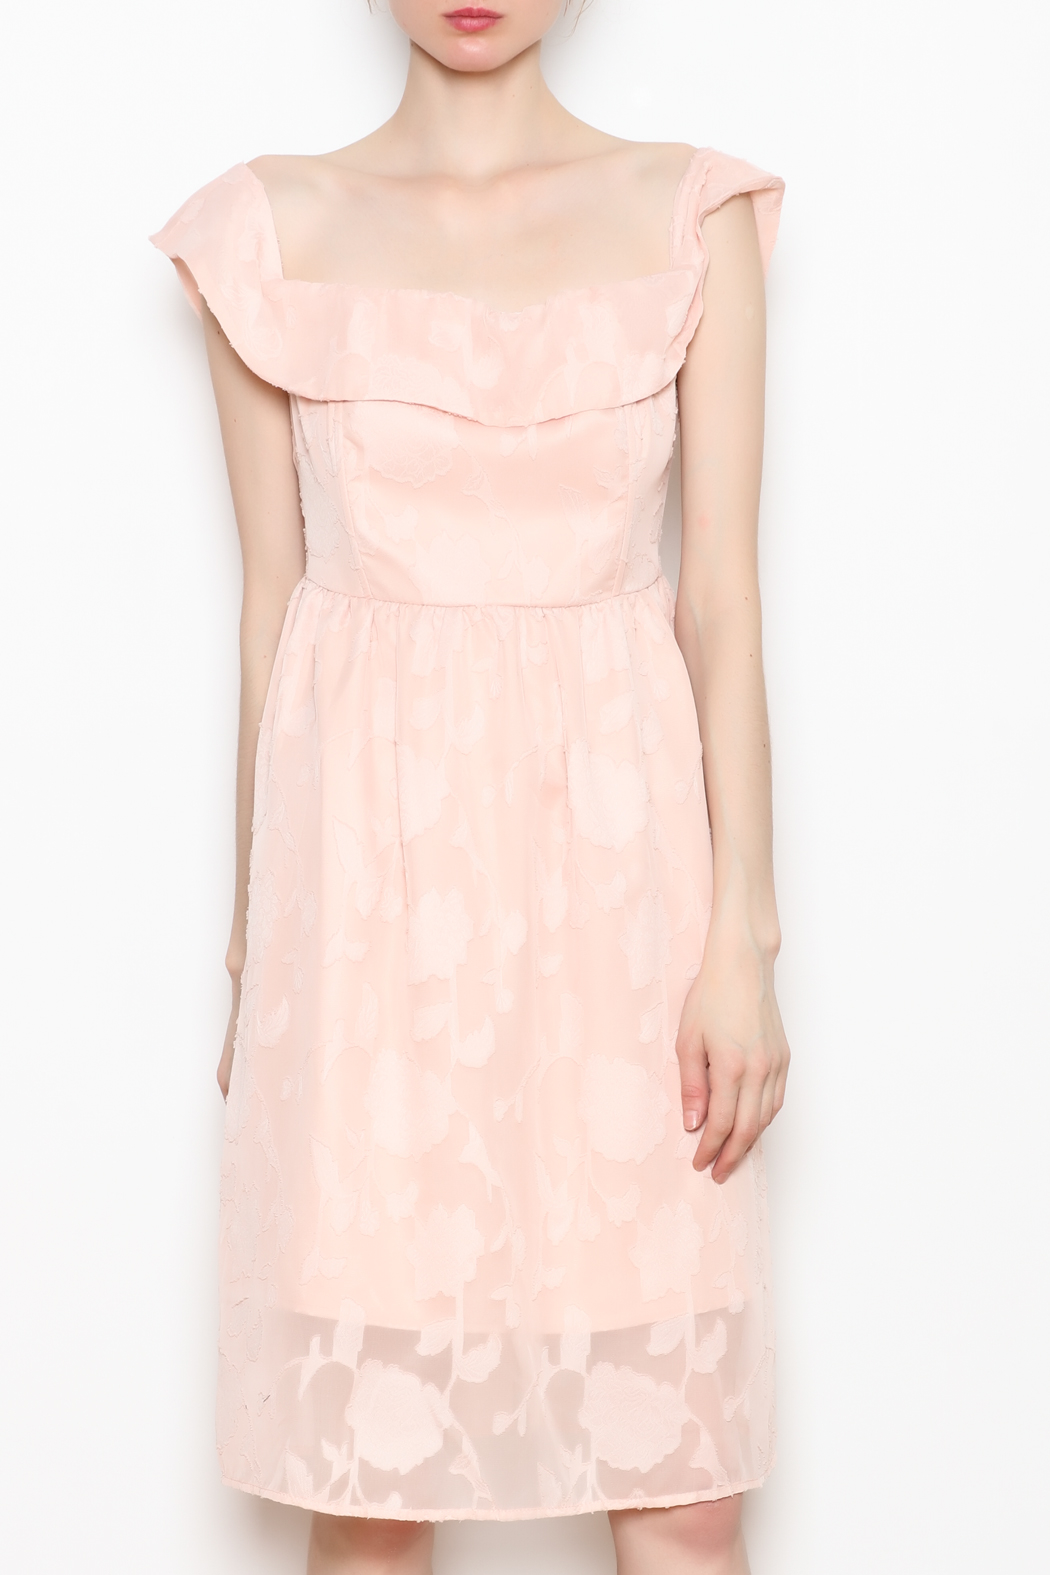 Cupcakes and Cashmere Off the Shoulder Dress - Main Image